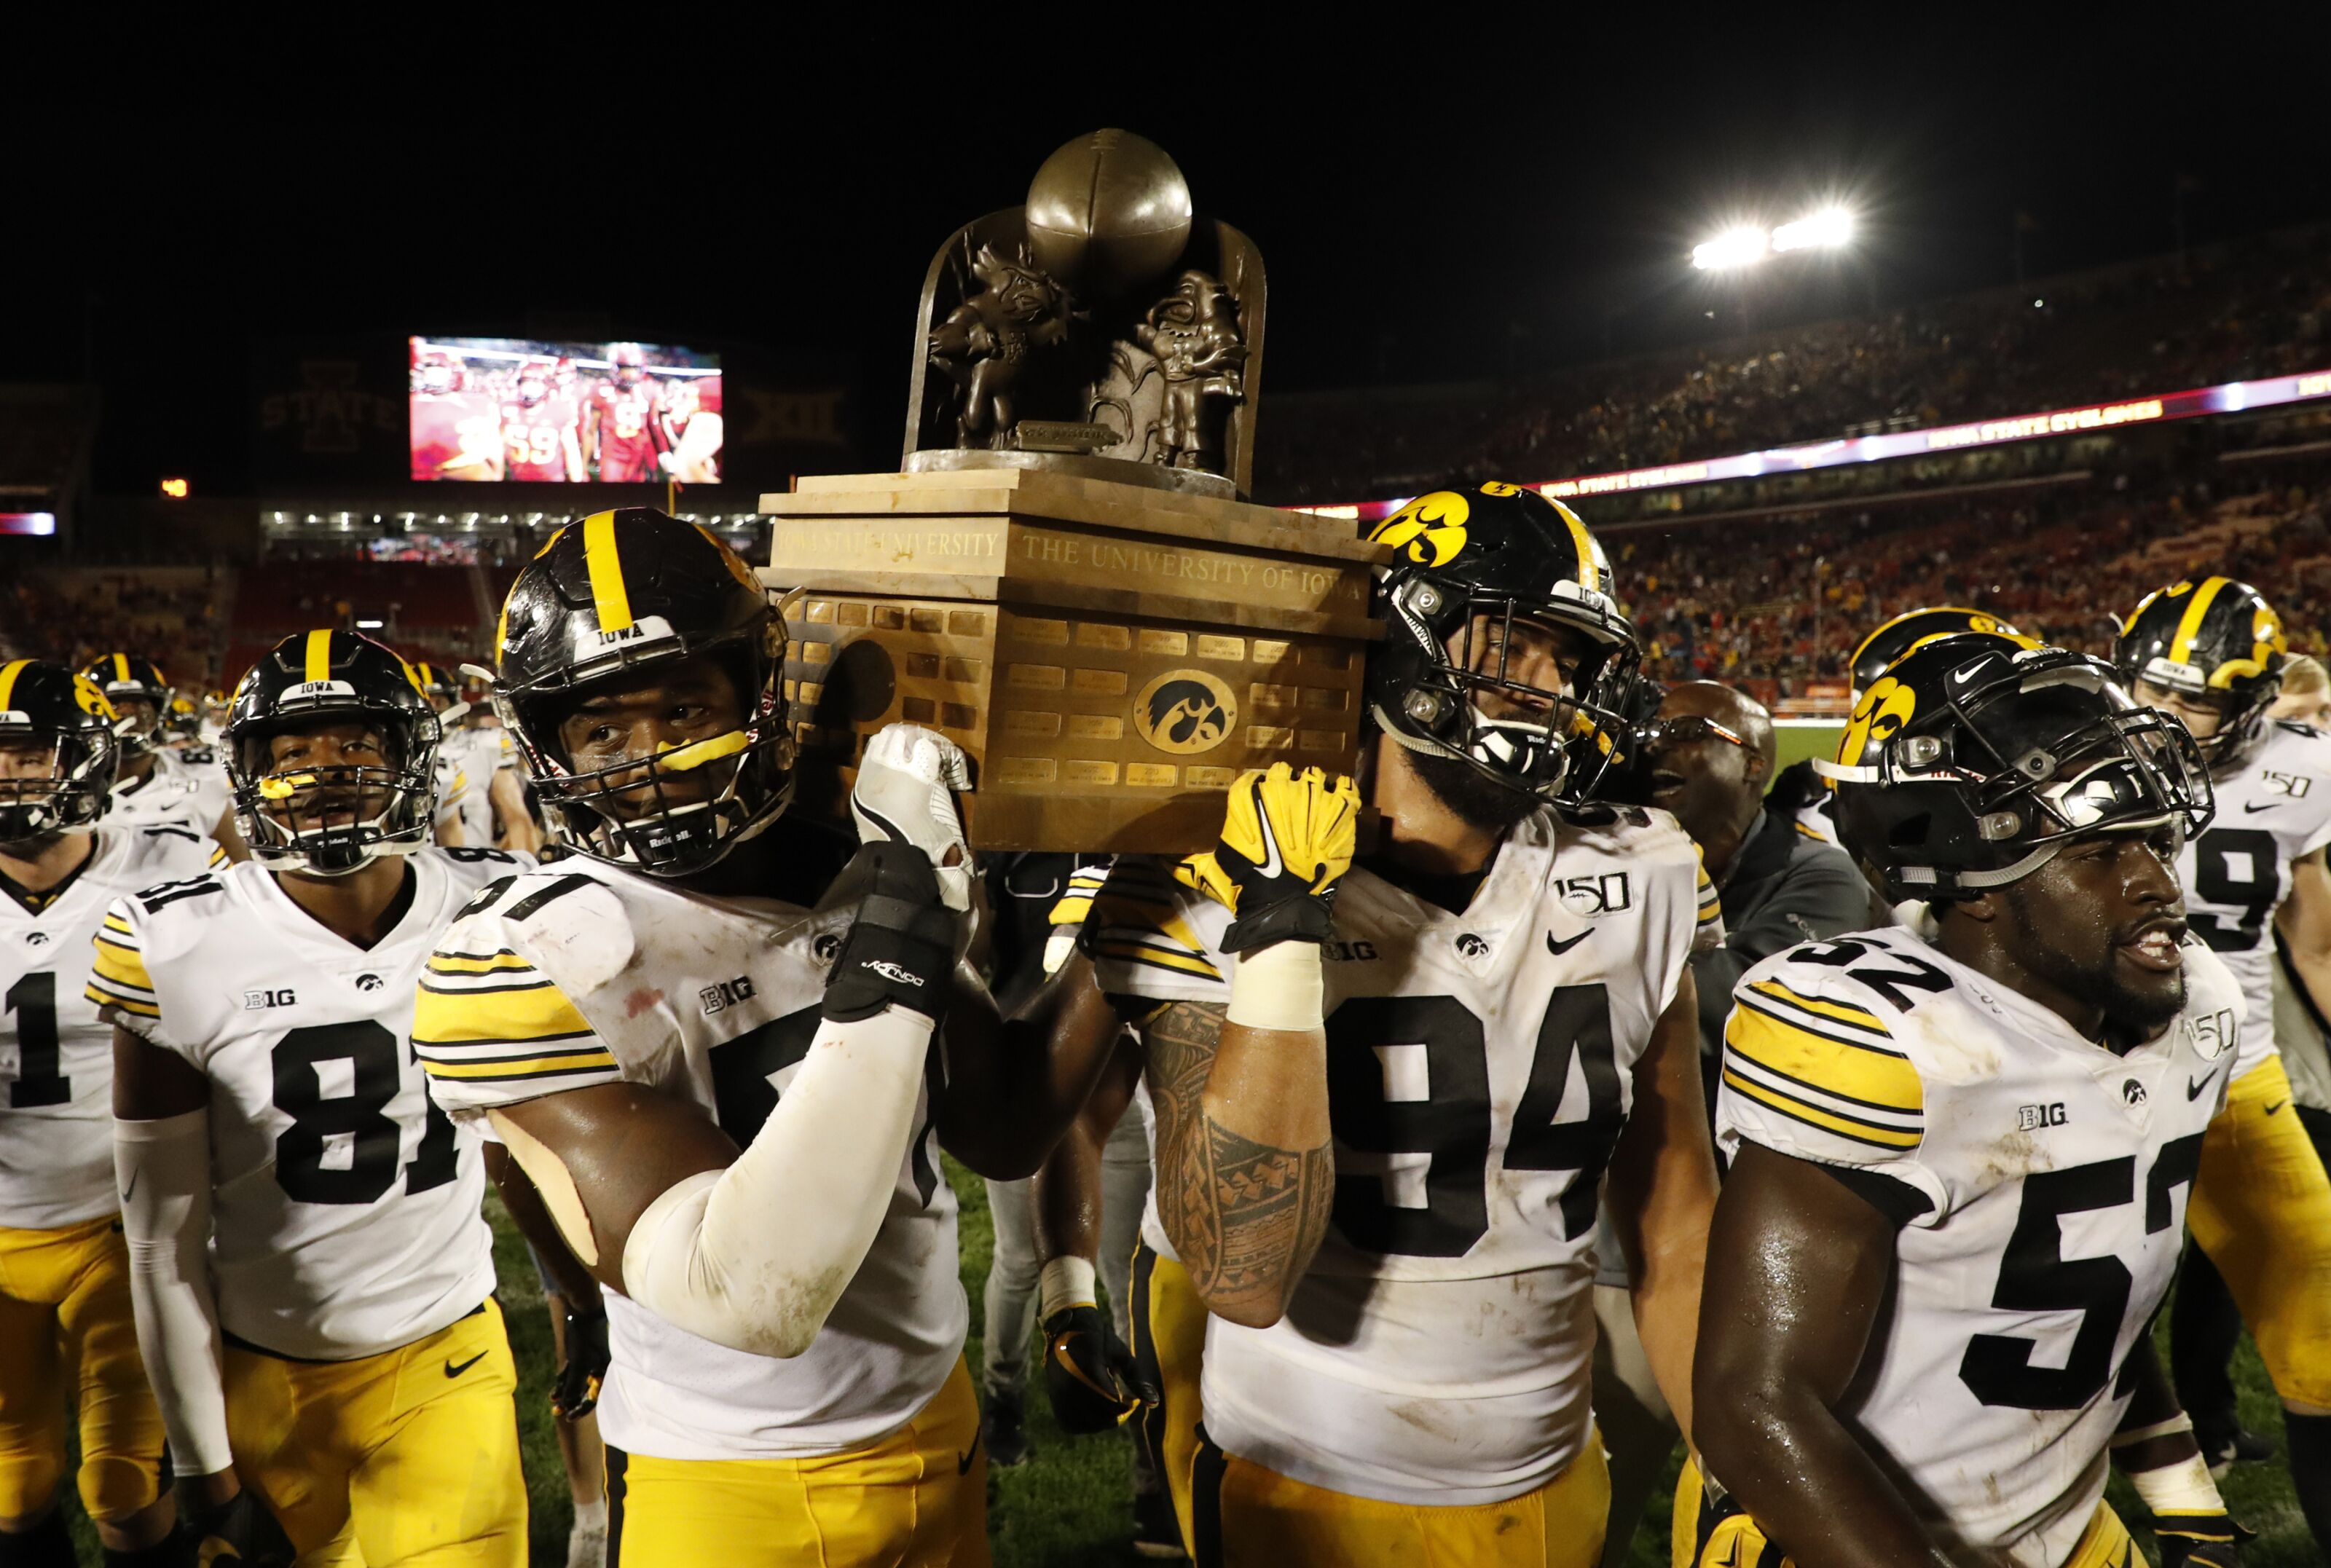 reputable site b54b9 d4136 Iowa football: Predicting Hawk's schedule for remaining nine ...